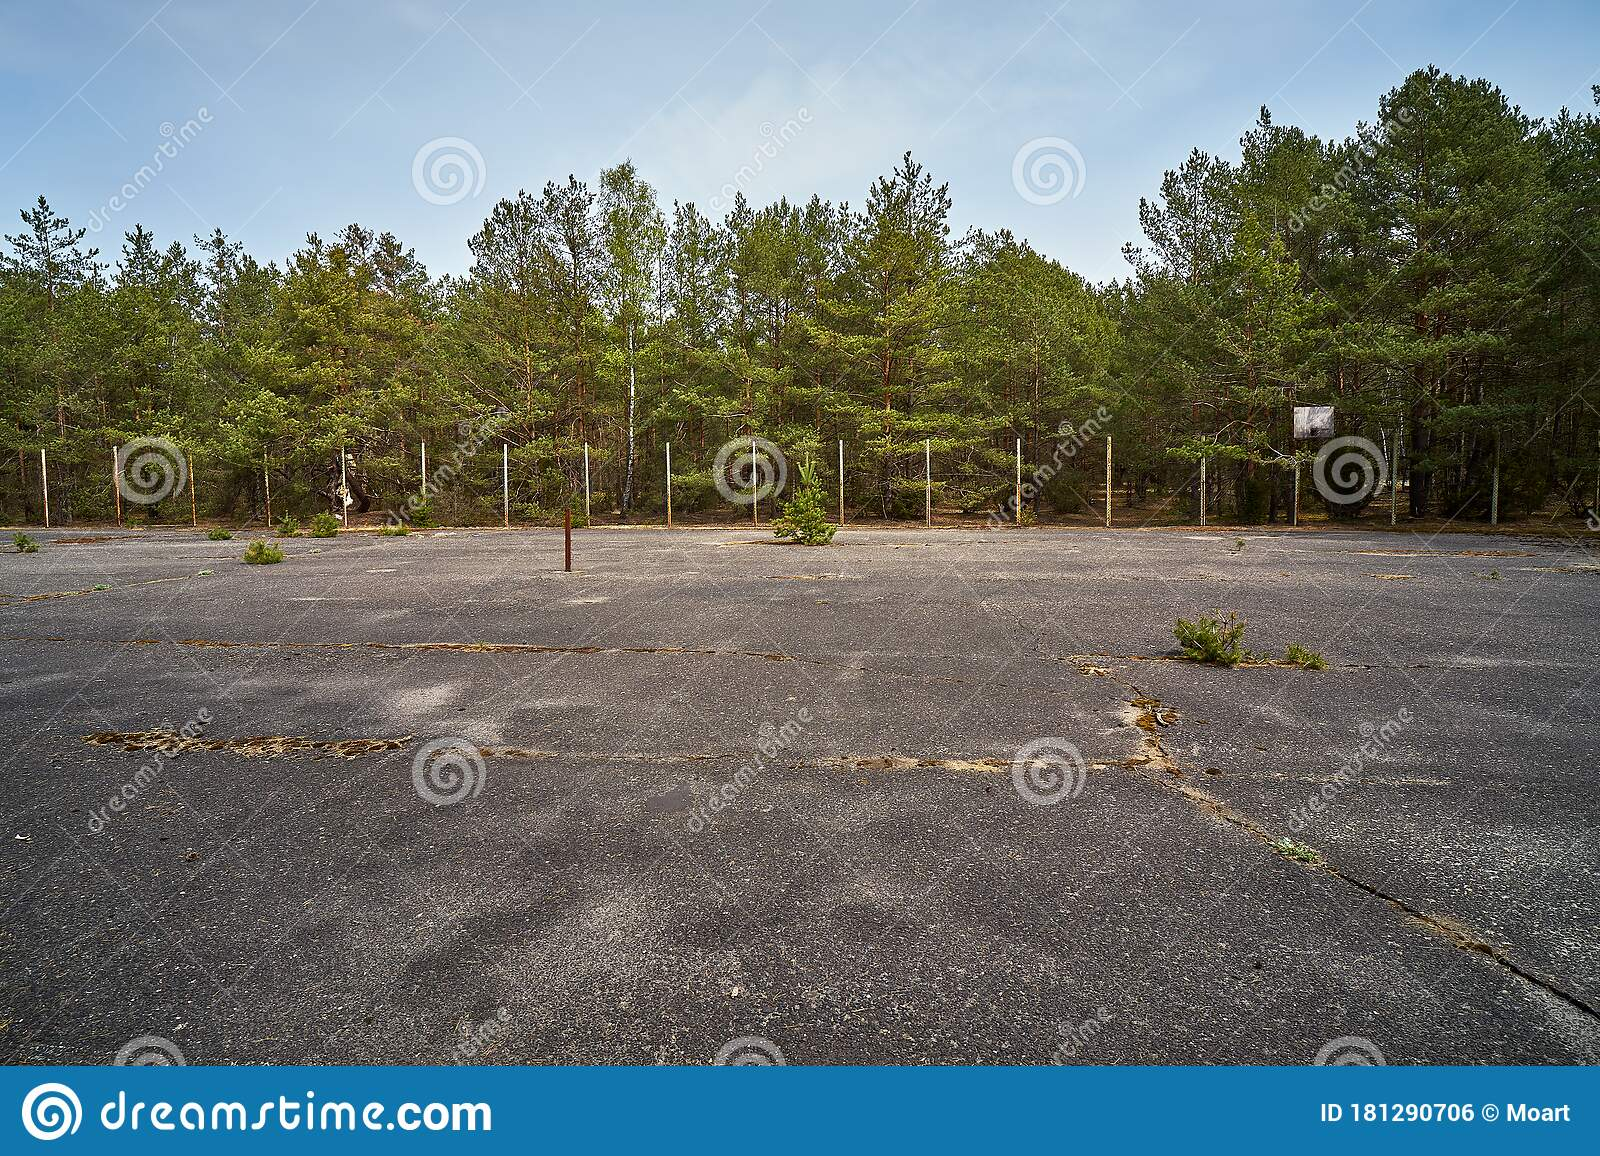 Old Abandoned Asphalt Playground In The Spring Forest Stock Photo Image Of Outdoor Concrete 181290706